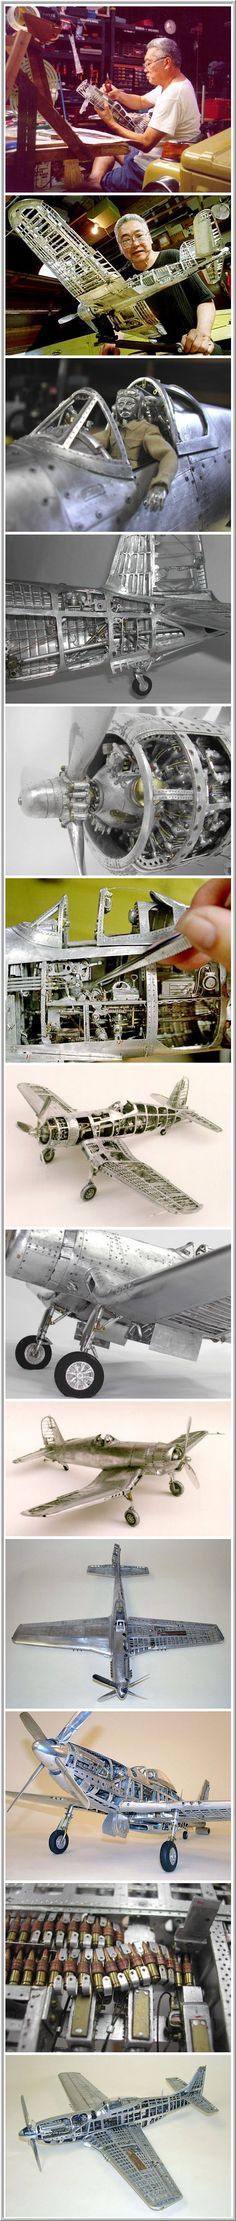 Unique model airplanes made of aluminum